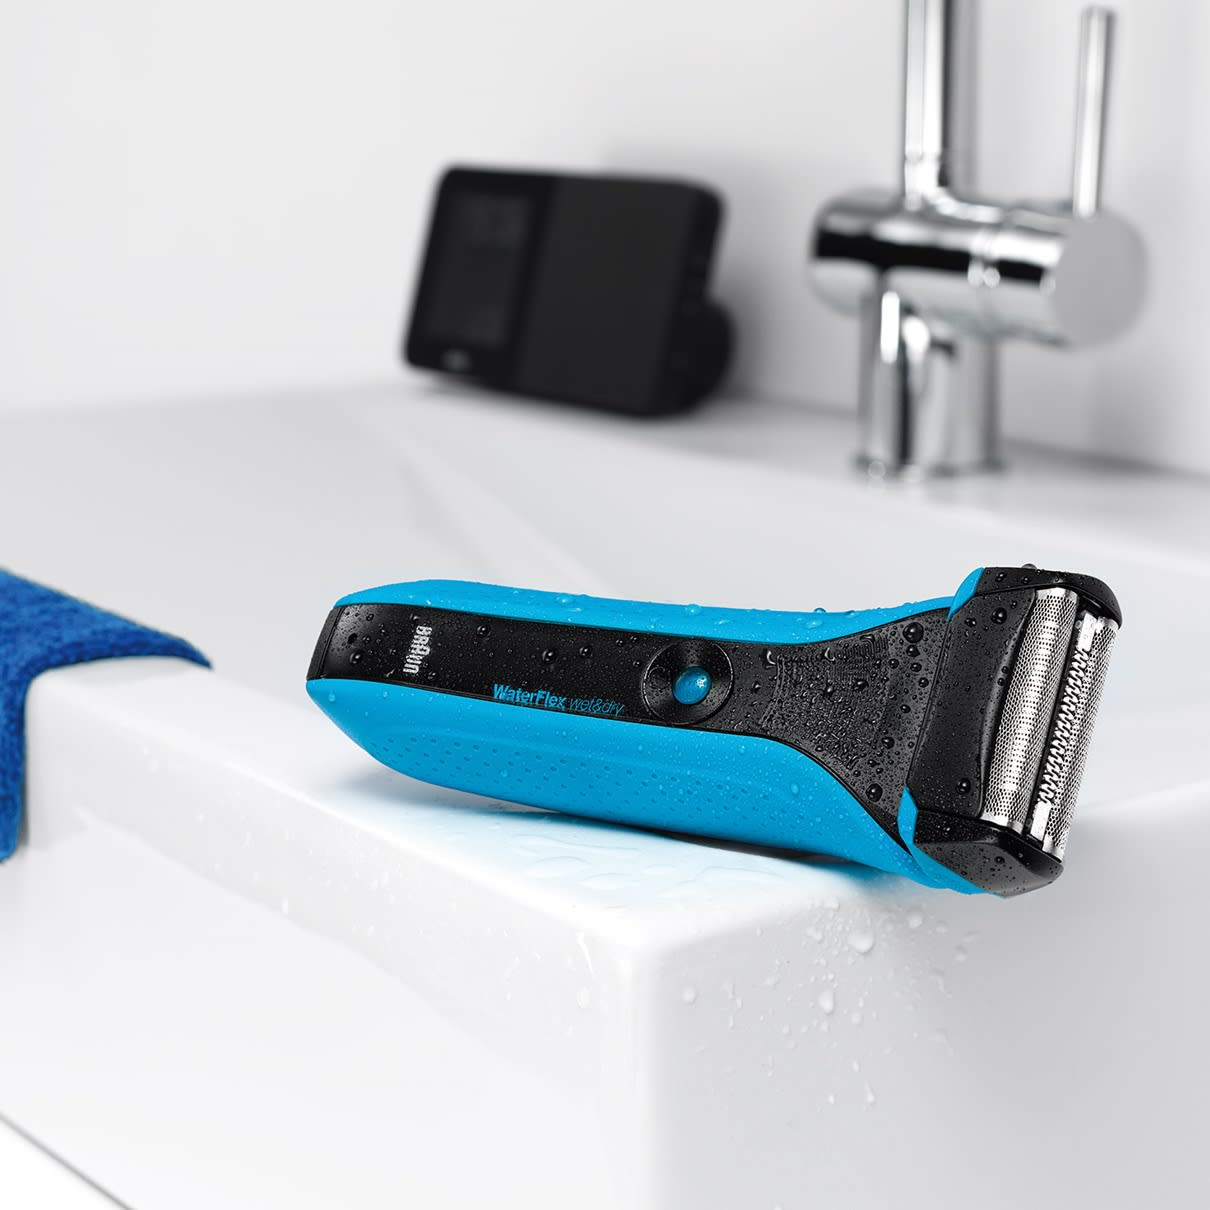 WaterFlex WF2s blue Wet&Dry shaver with swivel head